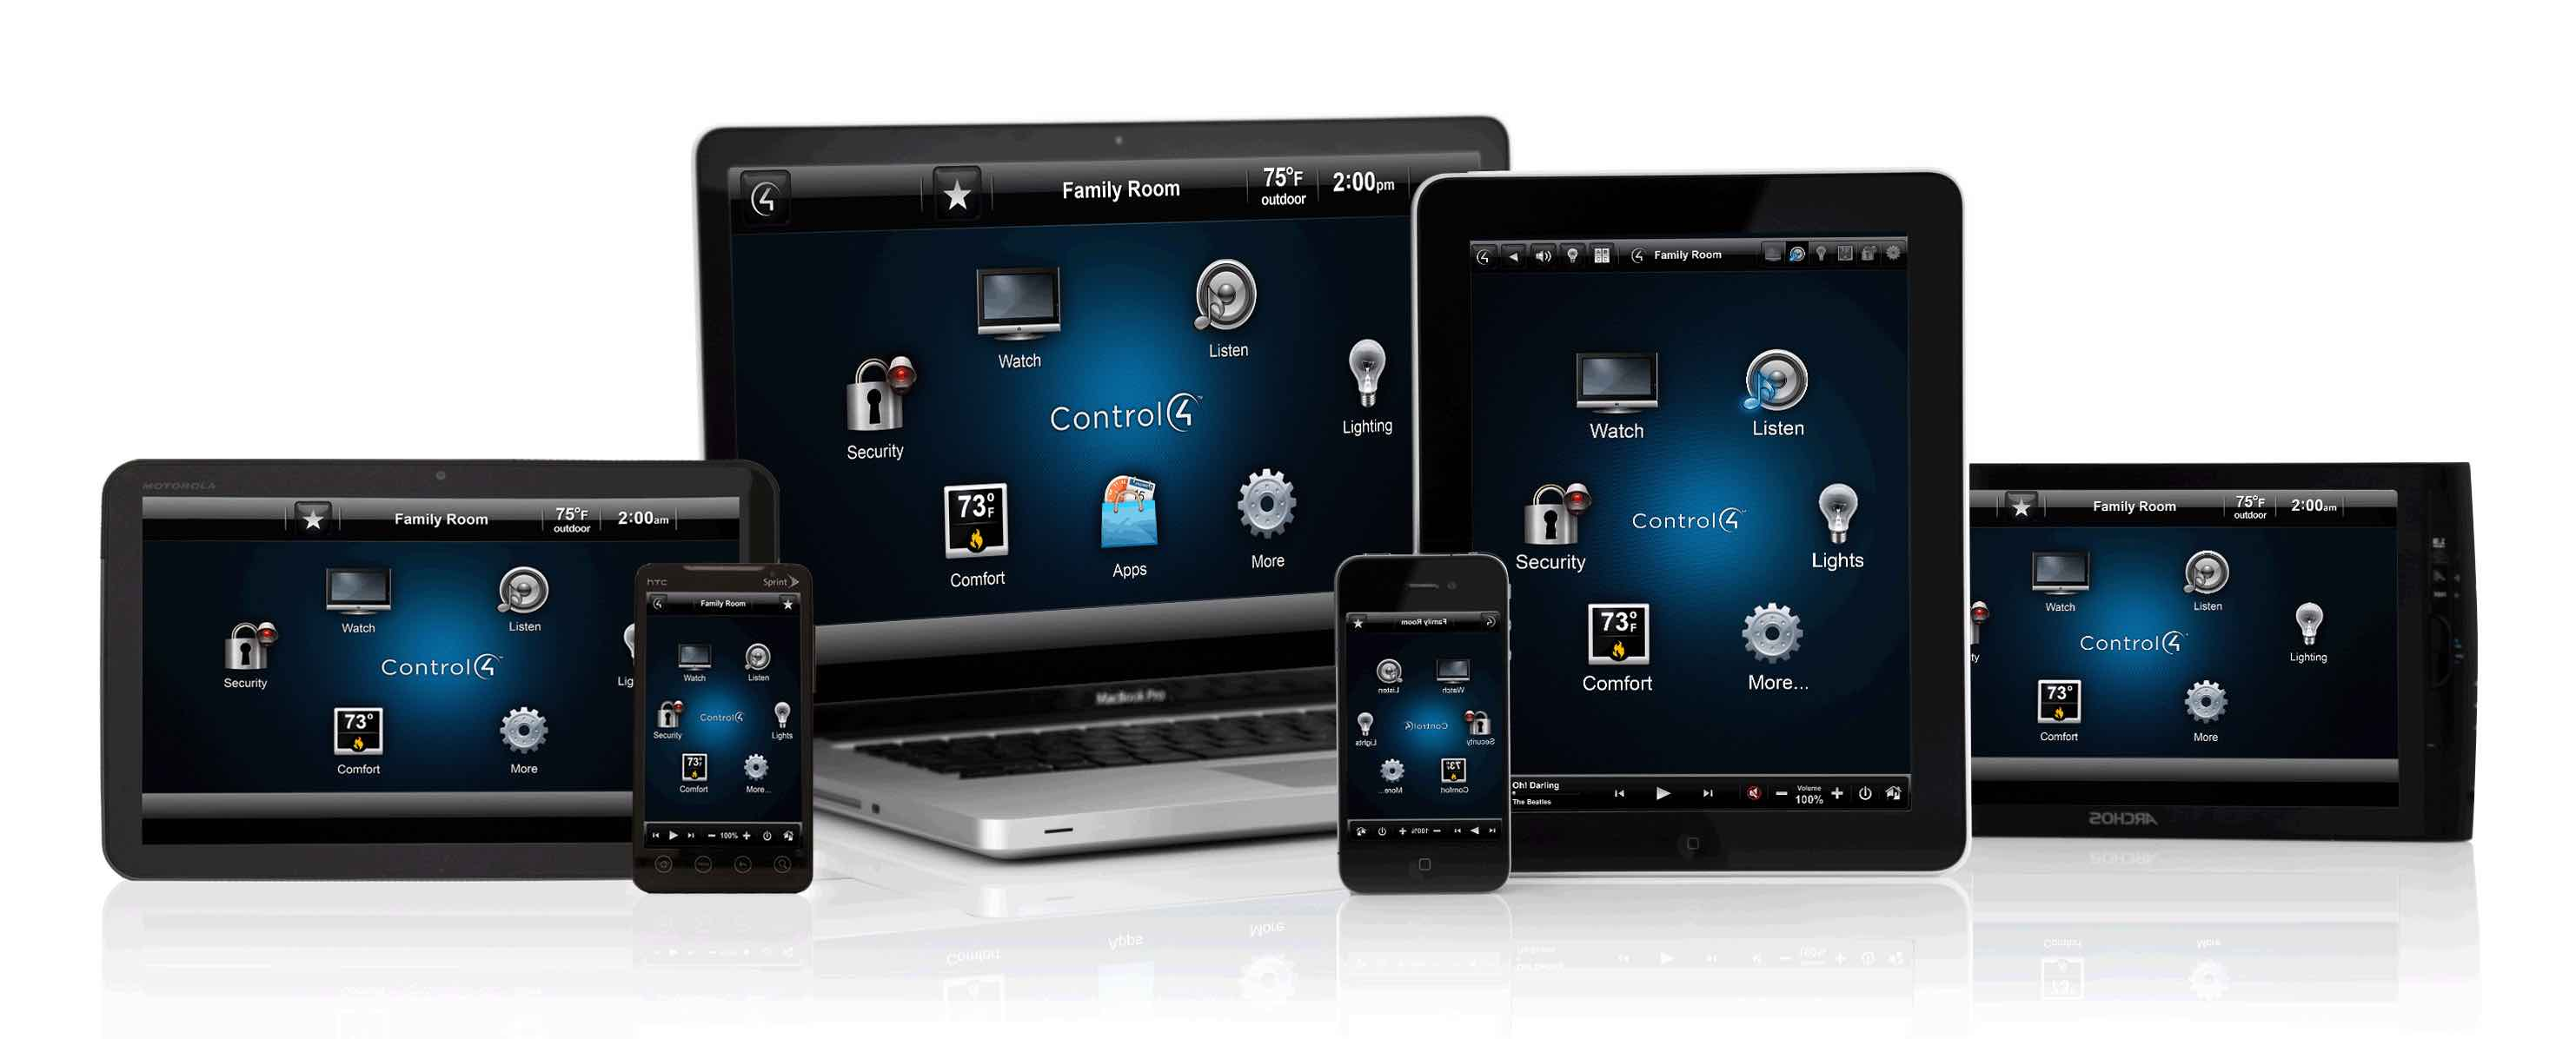 Control 4 - PC- & Mobile-Bedienstellen